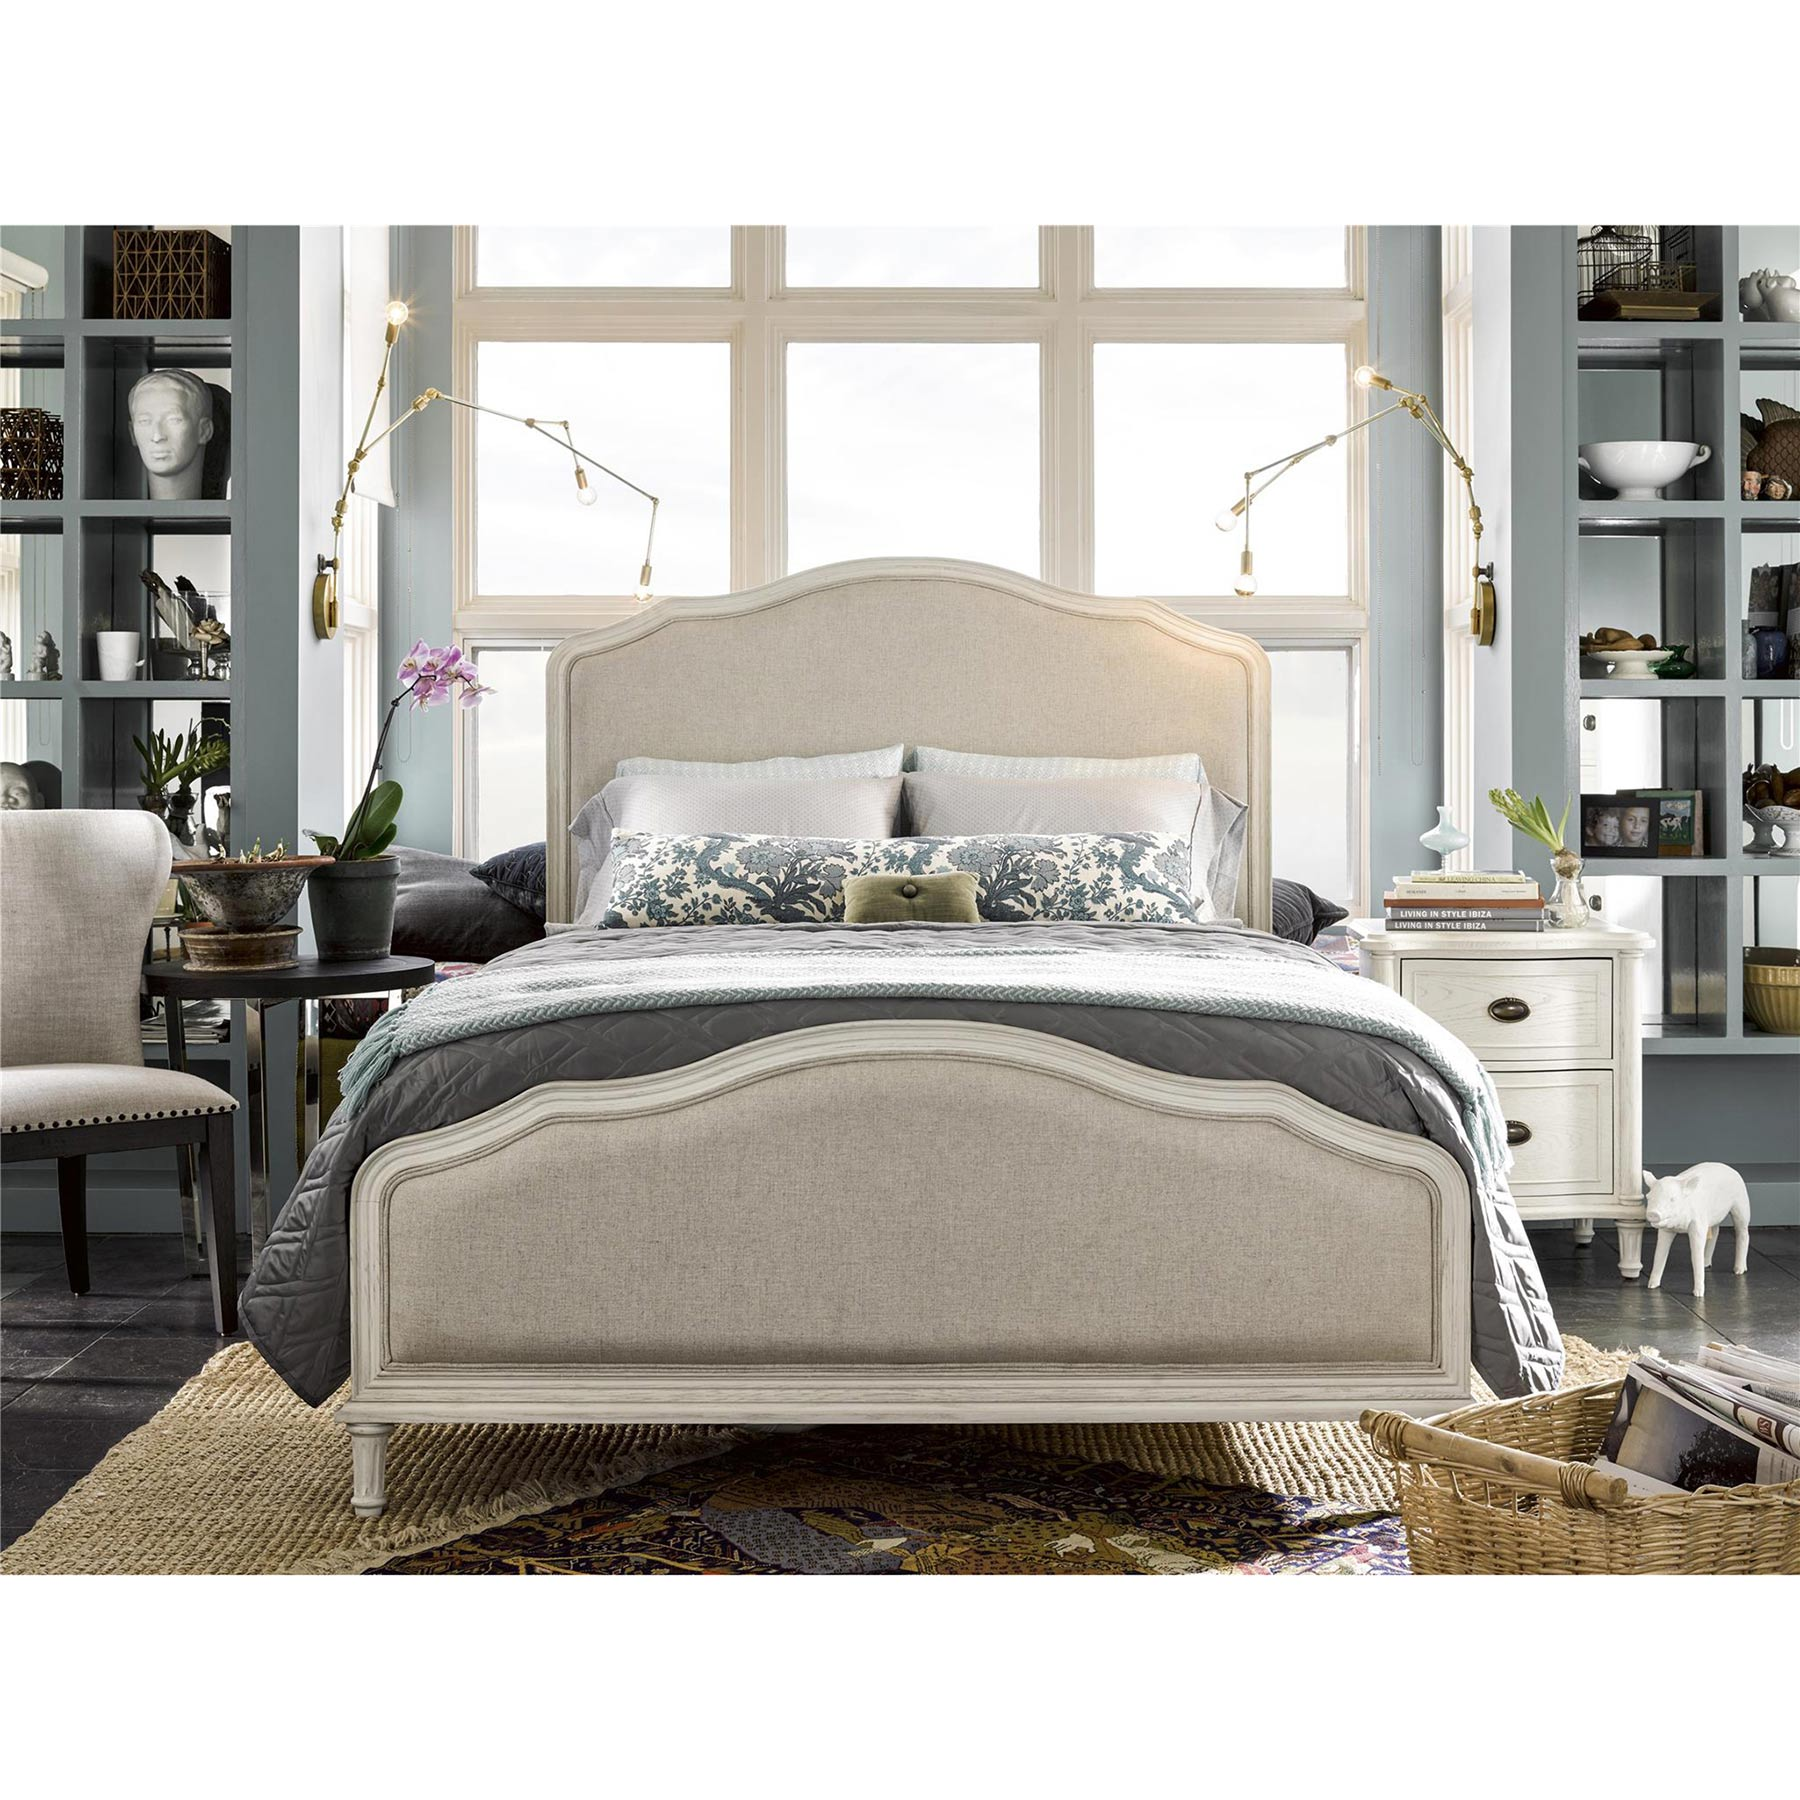 Zoe French Country Beige Upholstered White Wood Bed - King